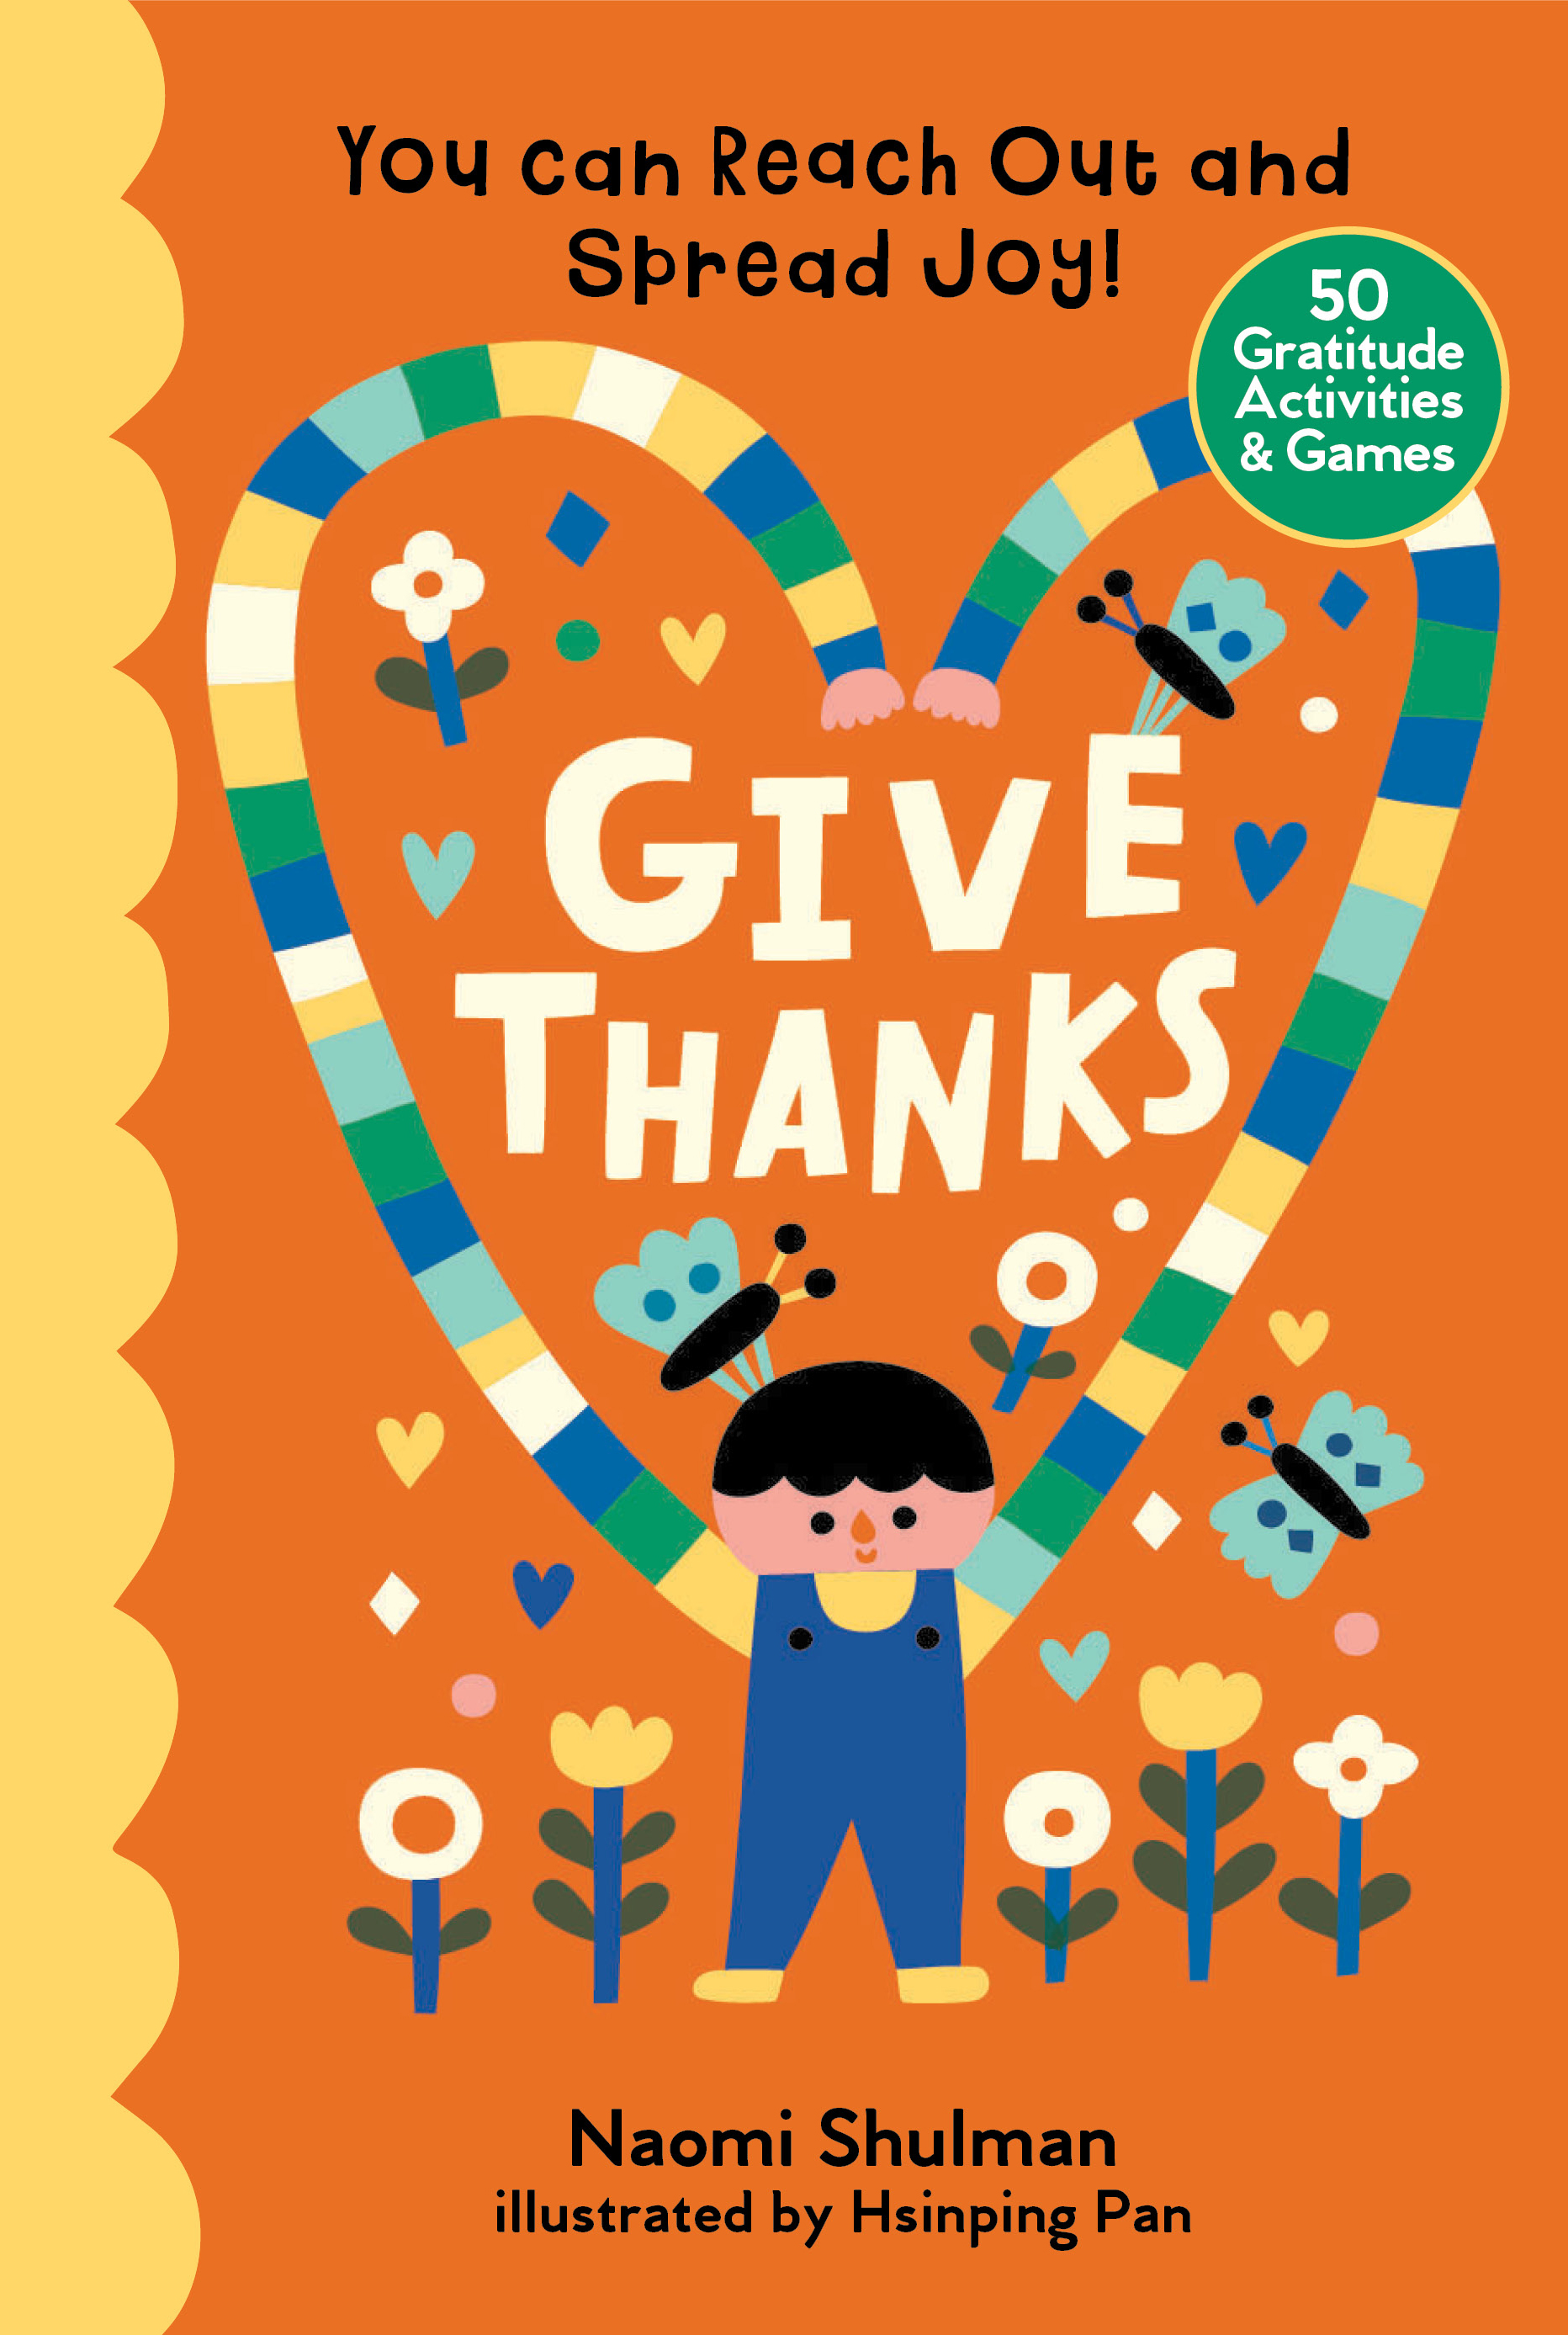 Give Thanks You Can Reach Out and Spread Joy! 50 Gratitude Activities & Games - Naomi Shulman